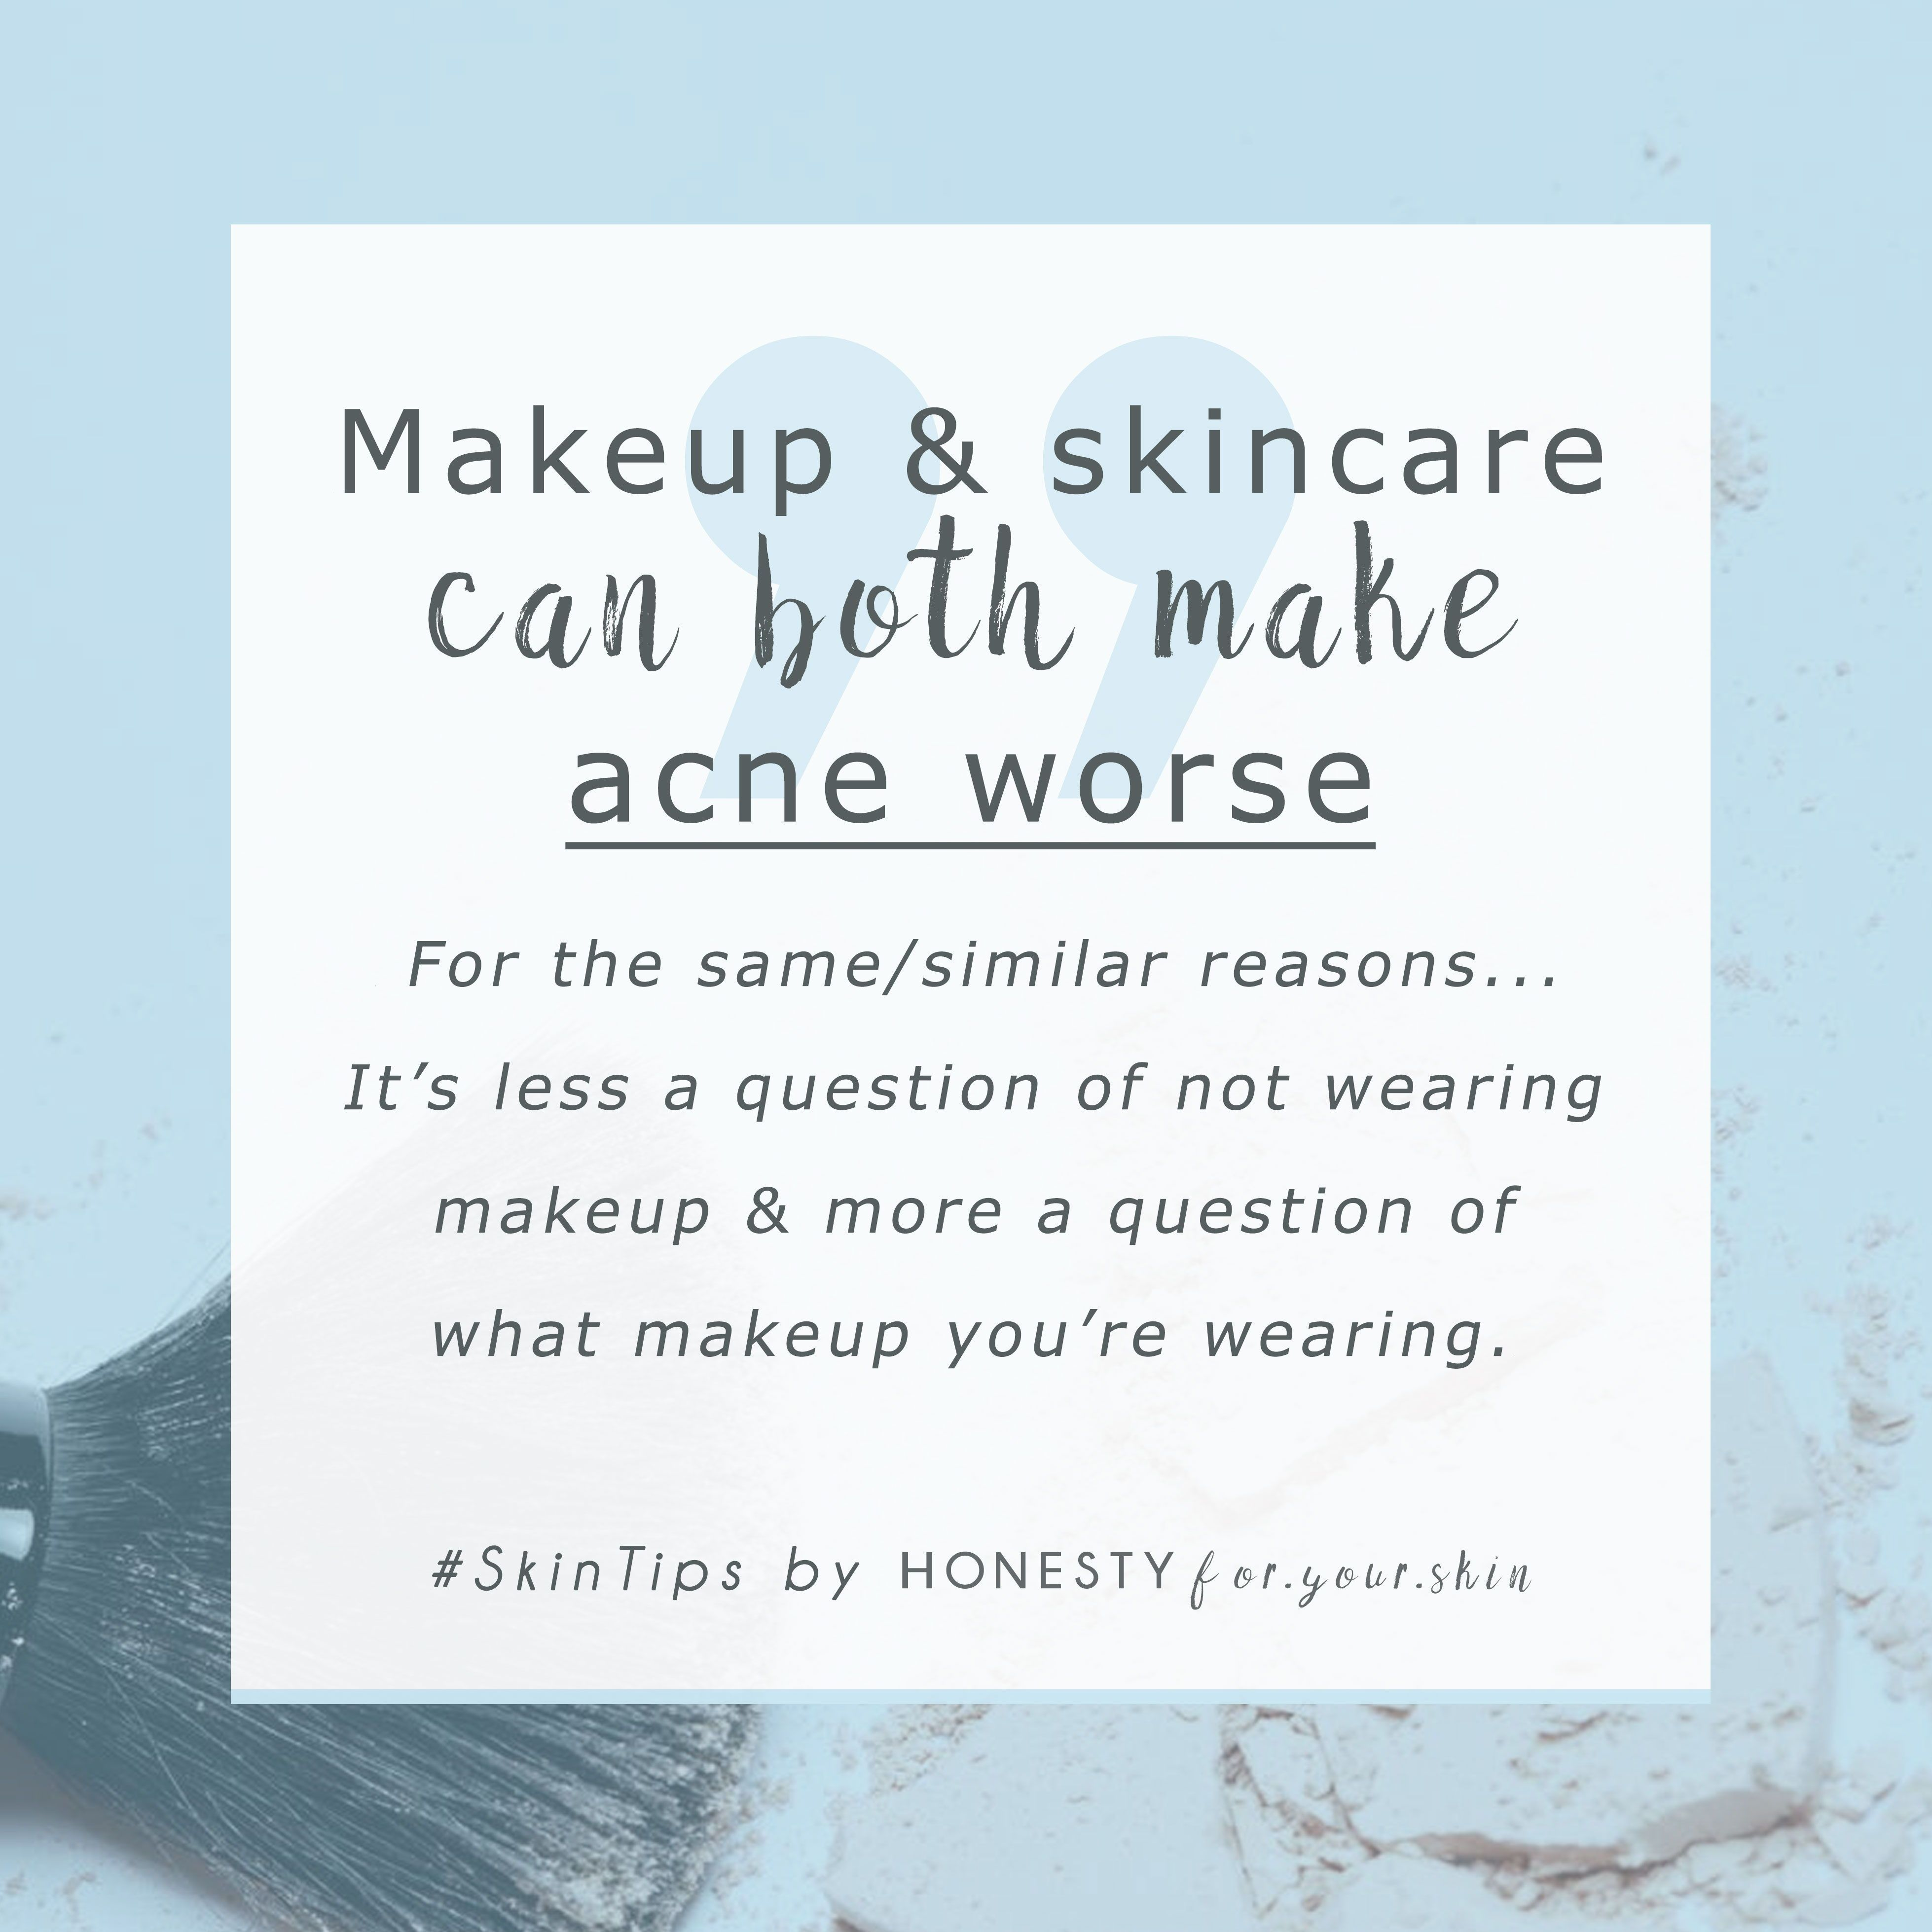 Does Makeup Cause Acne? You Might Be Shocked to Find This